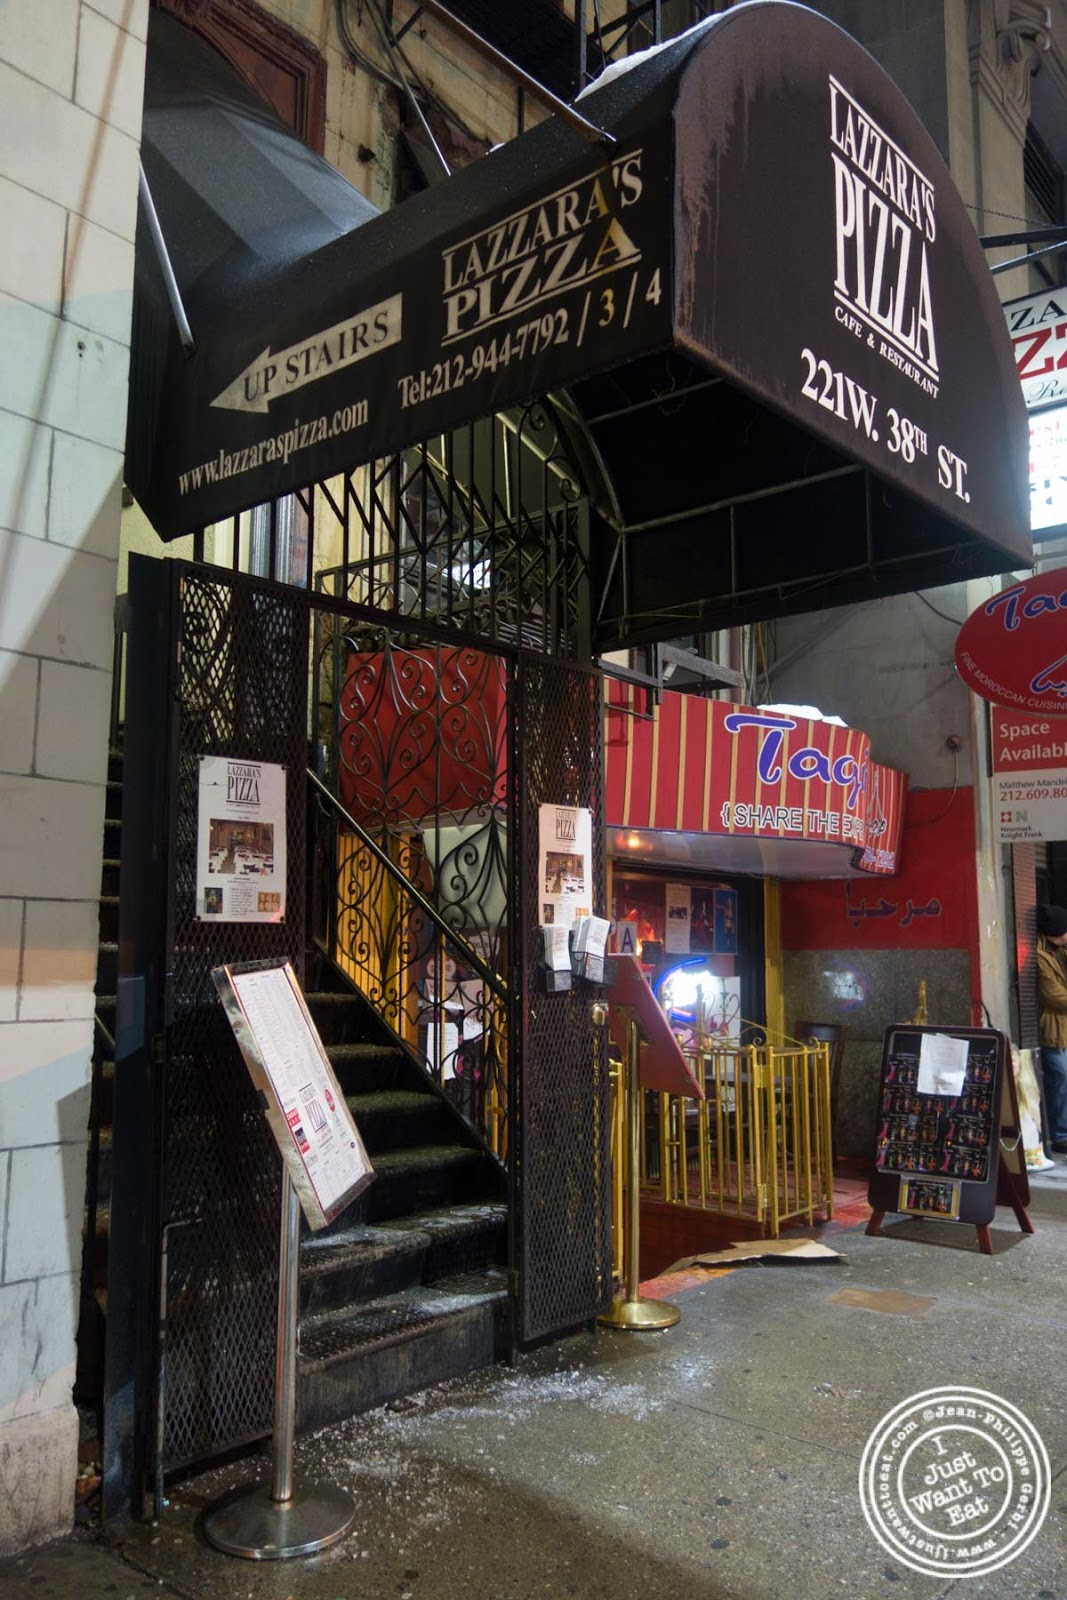 image of Lazzara's Pizza and Café in the Garment District, NYC, New York